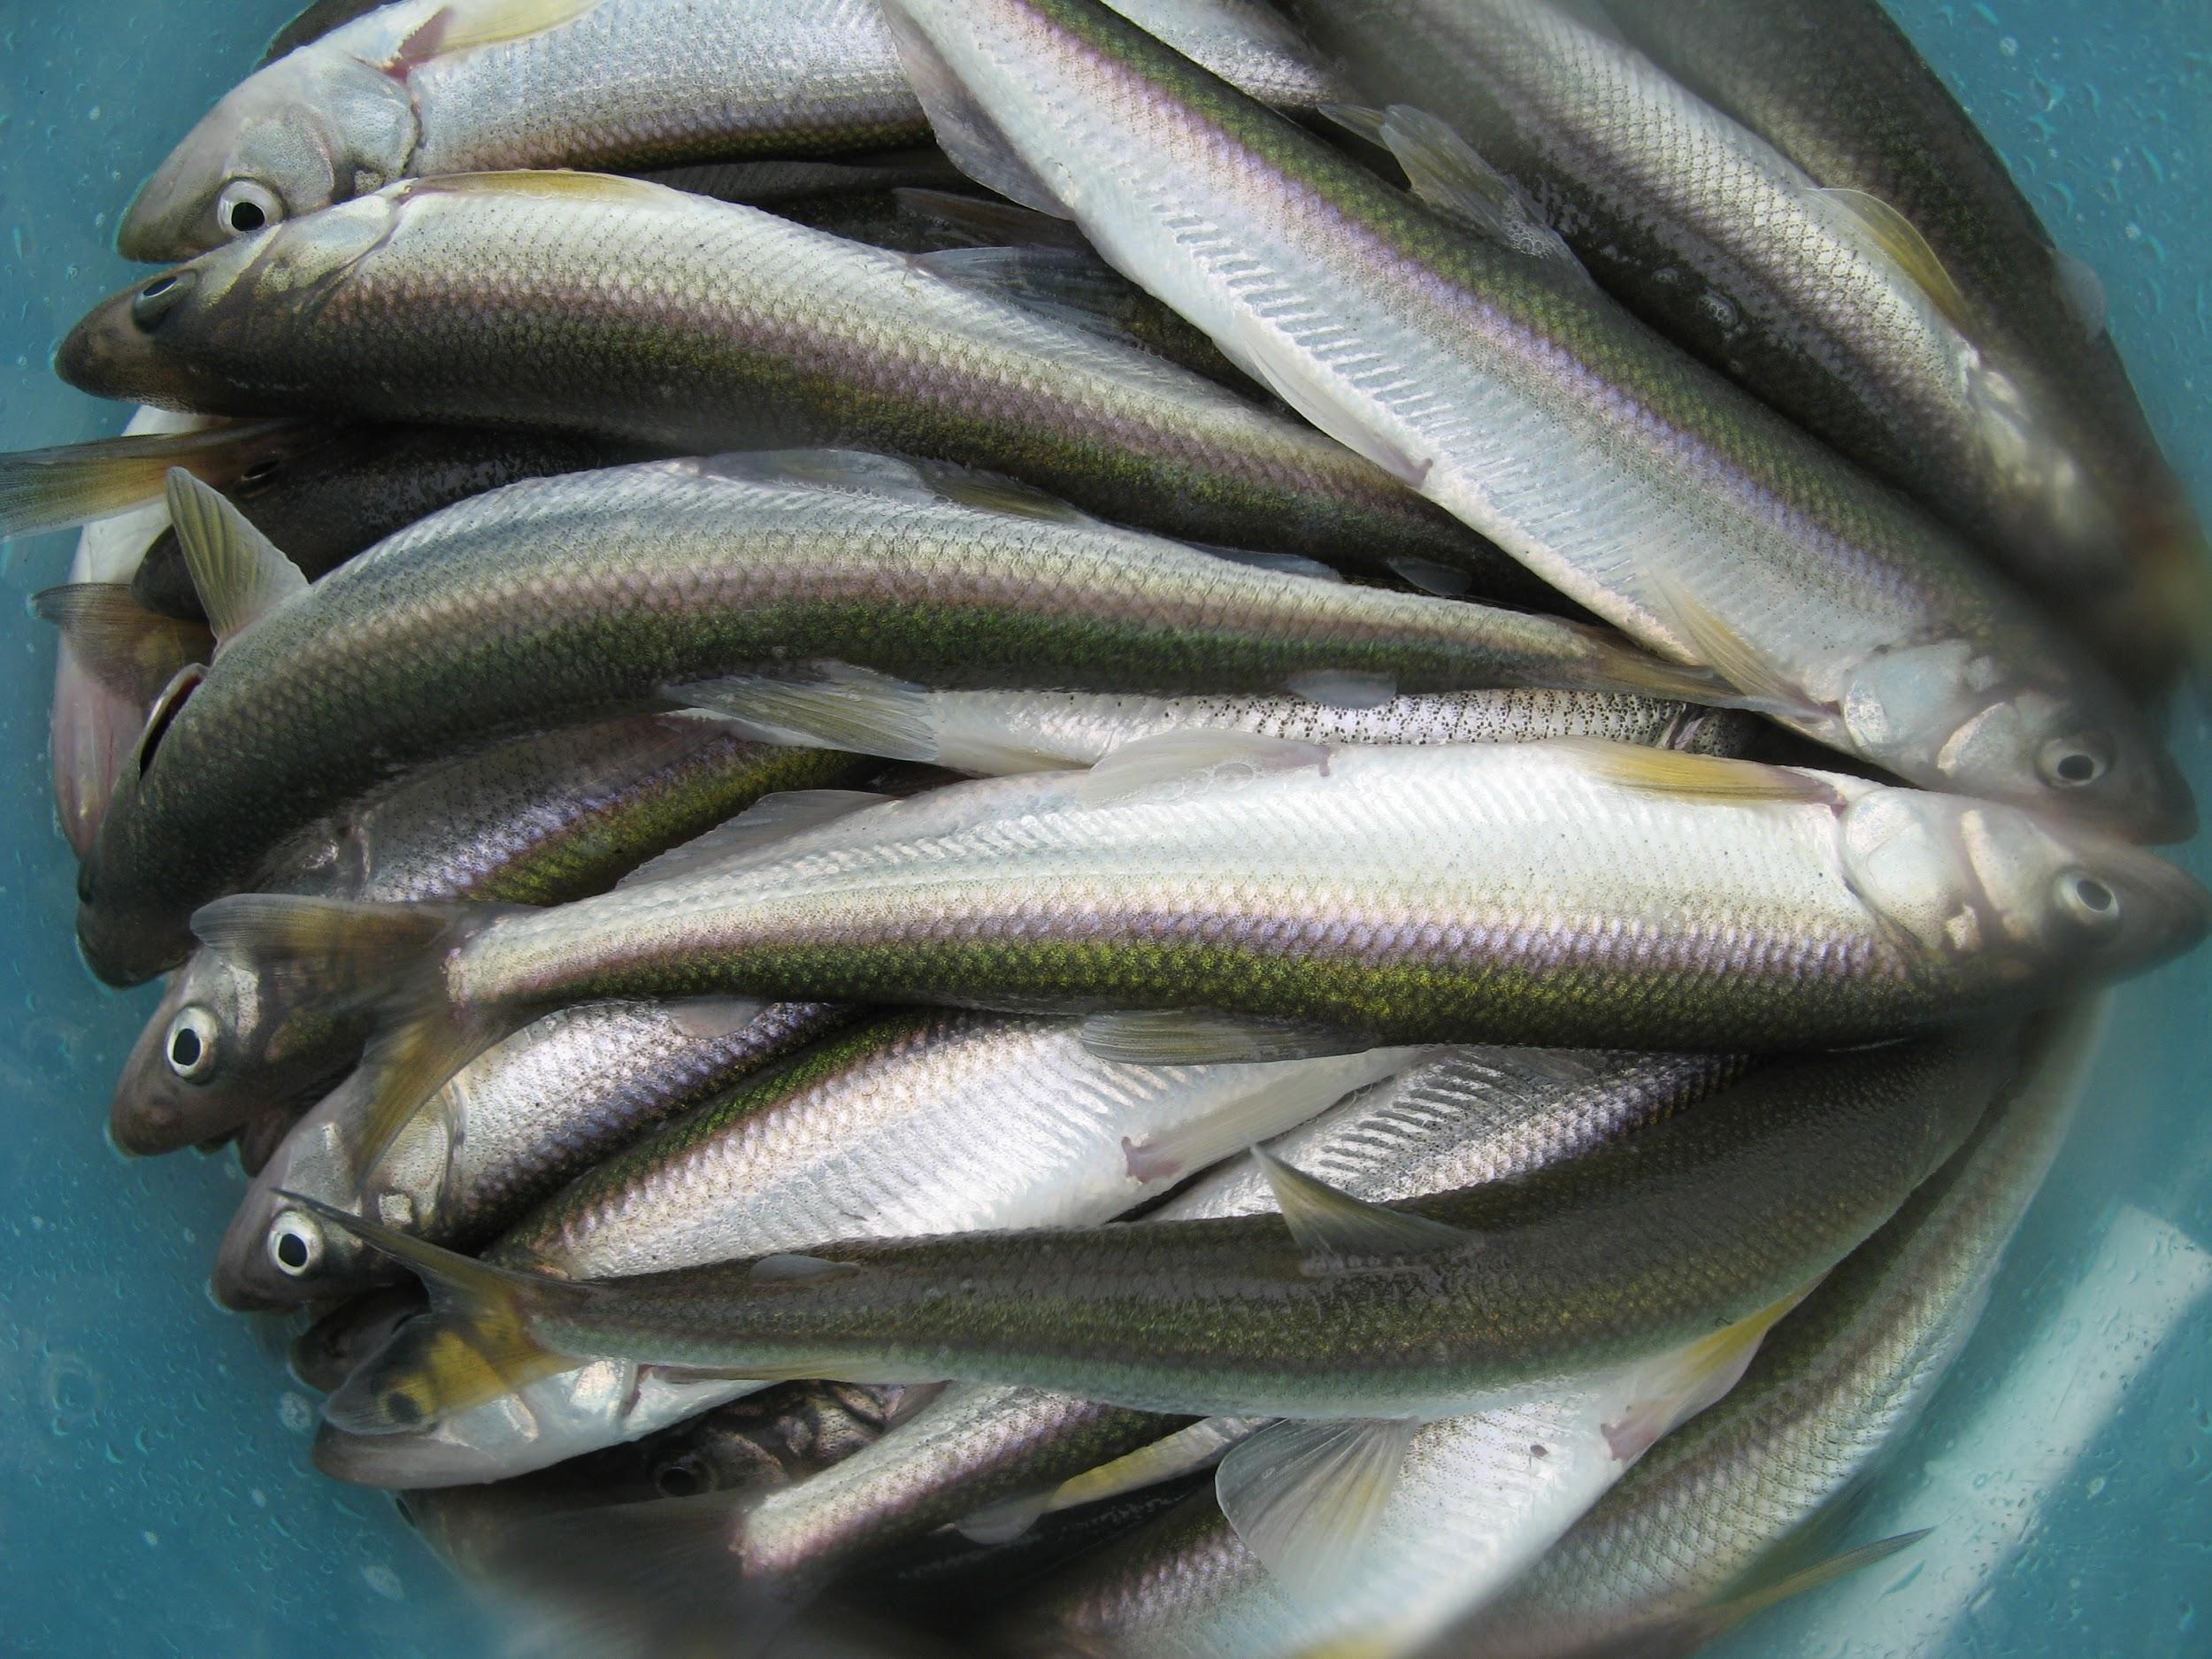 A photo of approximately a dozen eulachon smelt in a bucket. Eulachon smelt are small, silvery-blue fish.